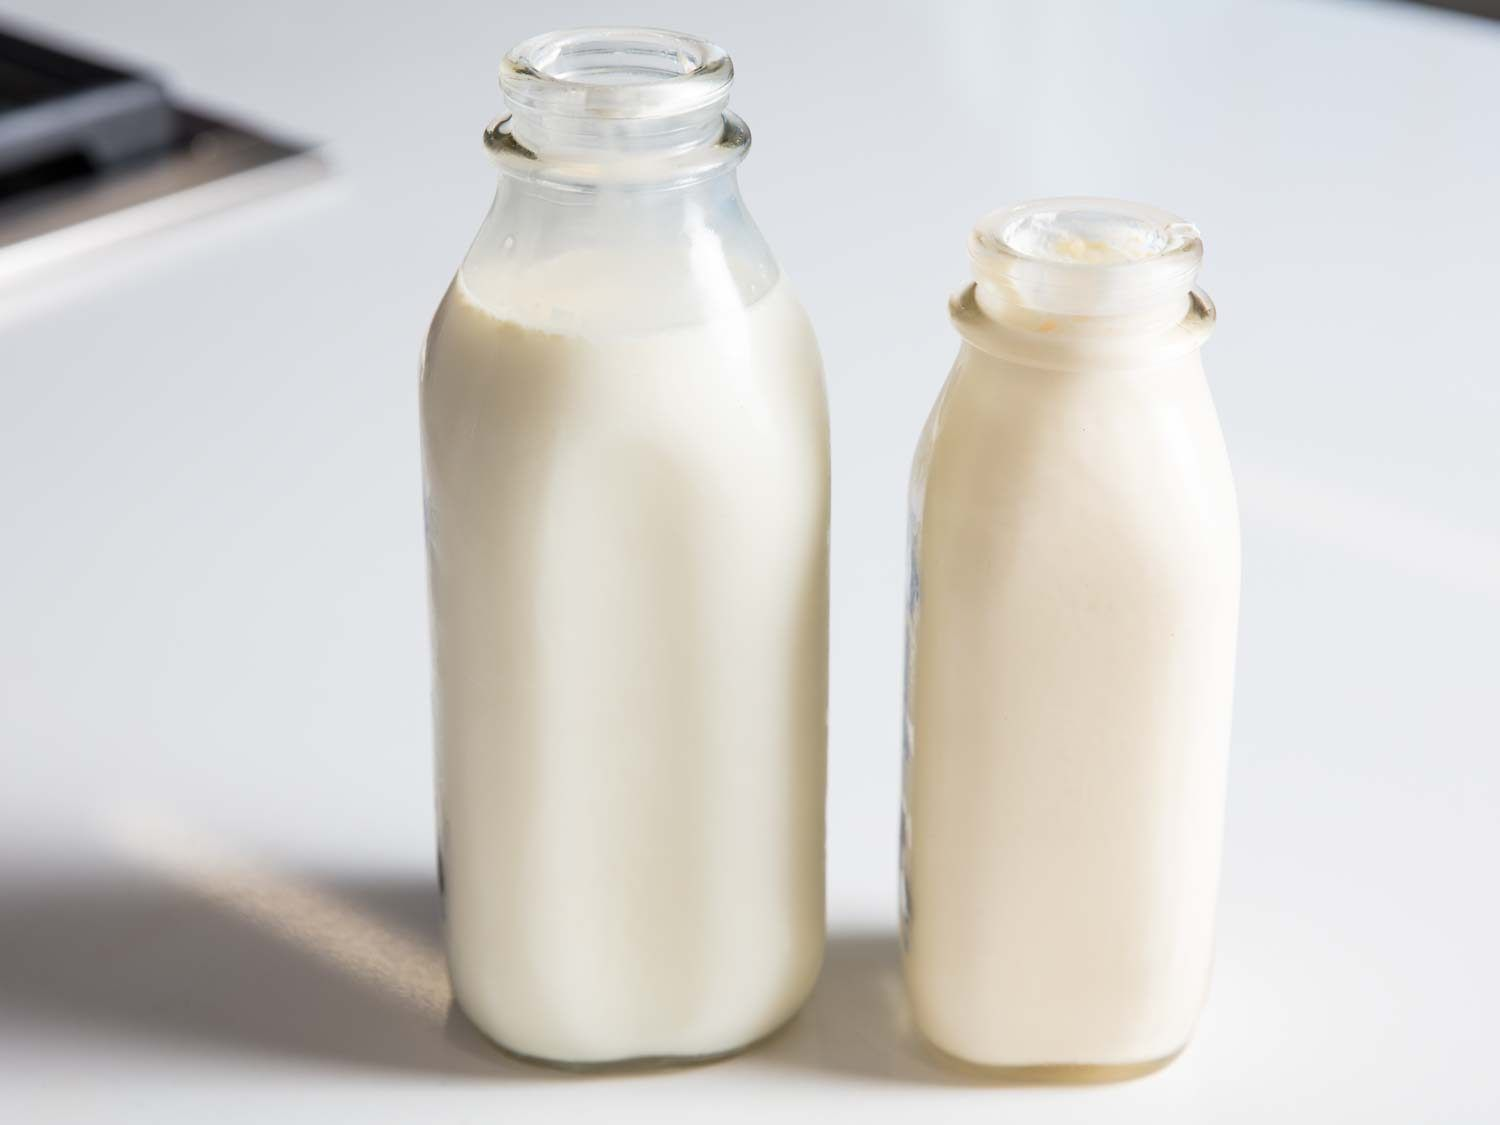 milk and cream from a local dairy